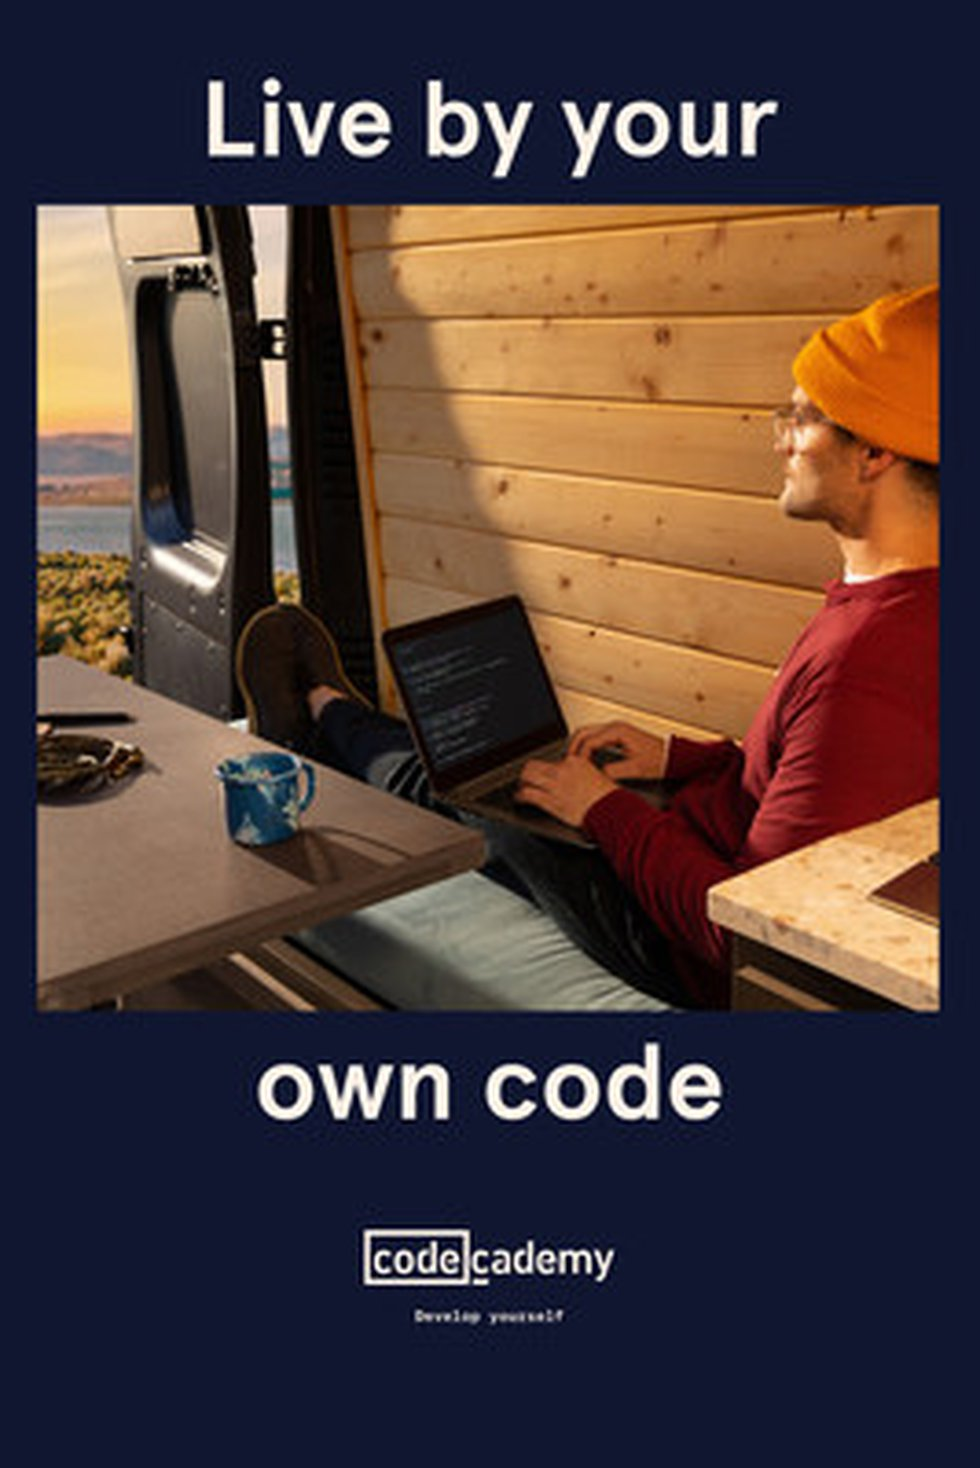 Codecademy's 'Live By Your Own Code' brand campaign